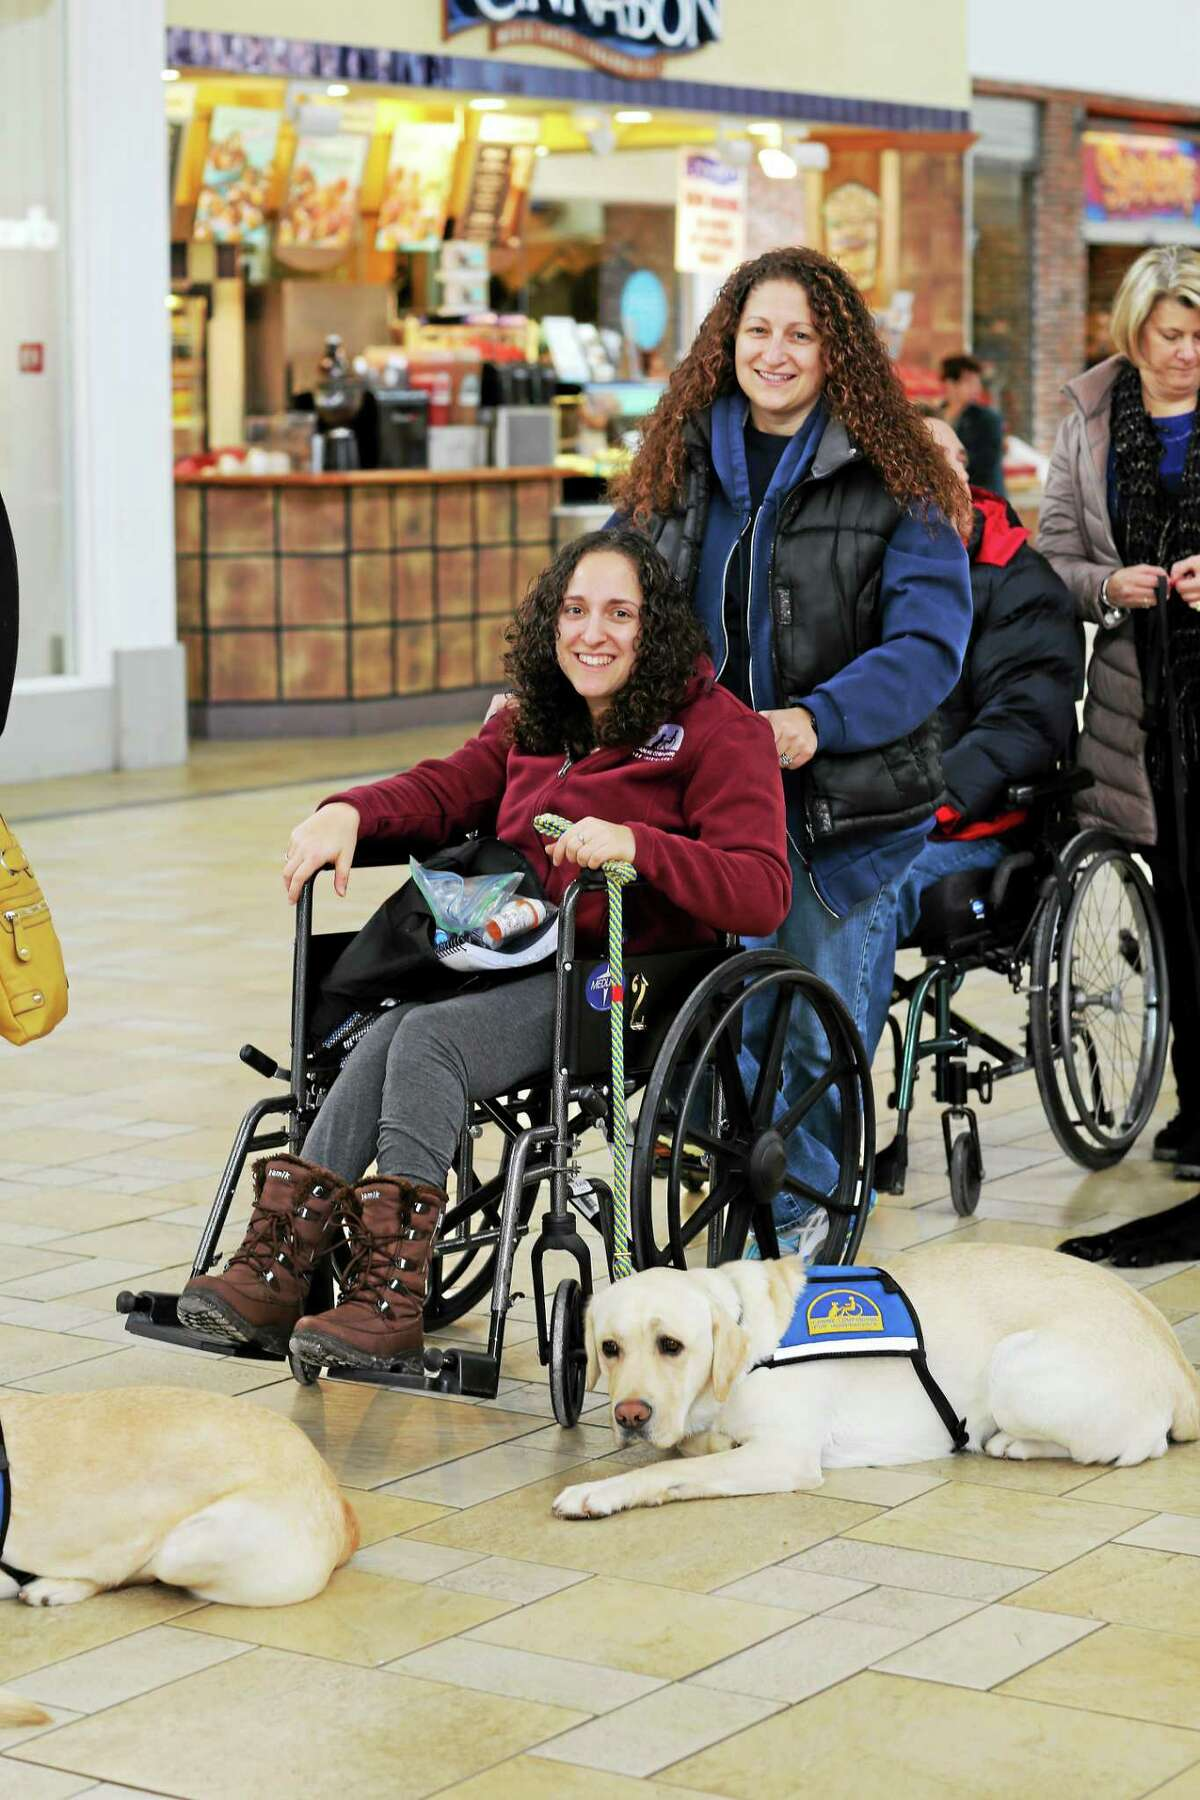 Molly Carta, a vocational counselor for the disabled, was recently matched with assistance dog Dasher from Canine Companions for Independence. She's a graduate of Middletown High School who has cerebral palsy.